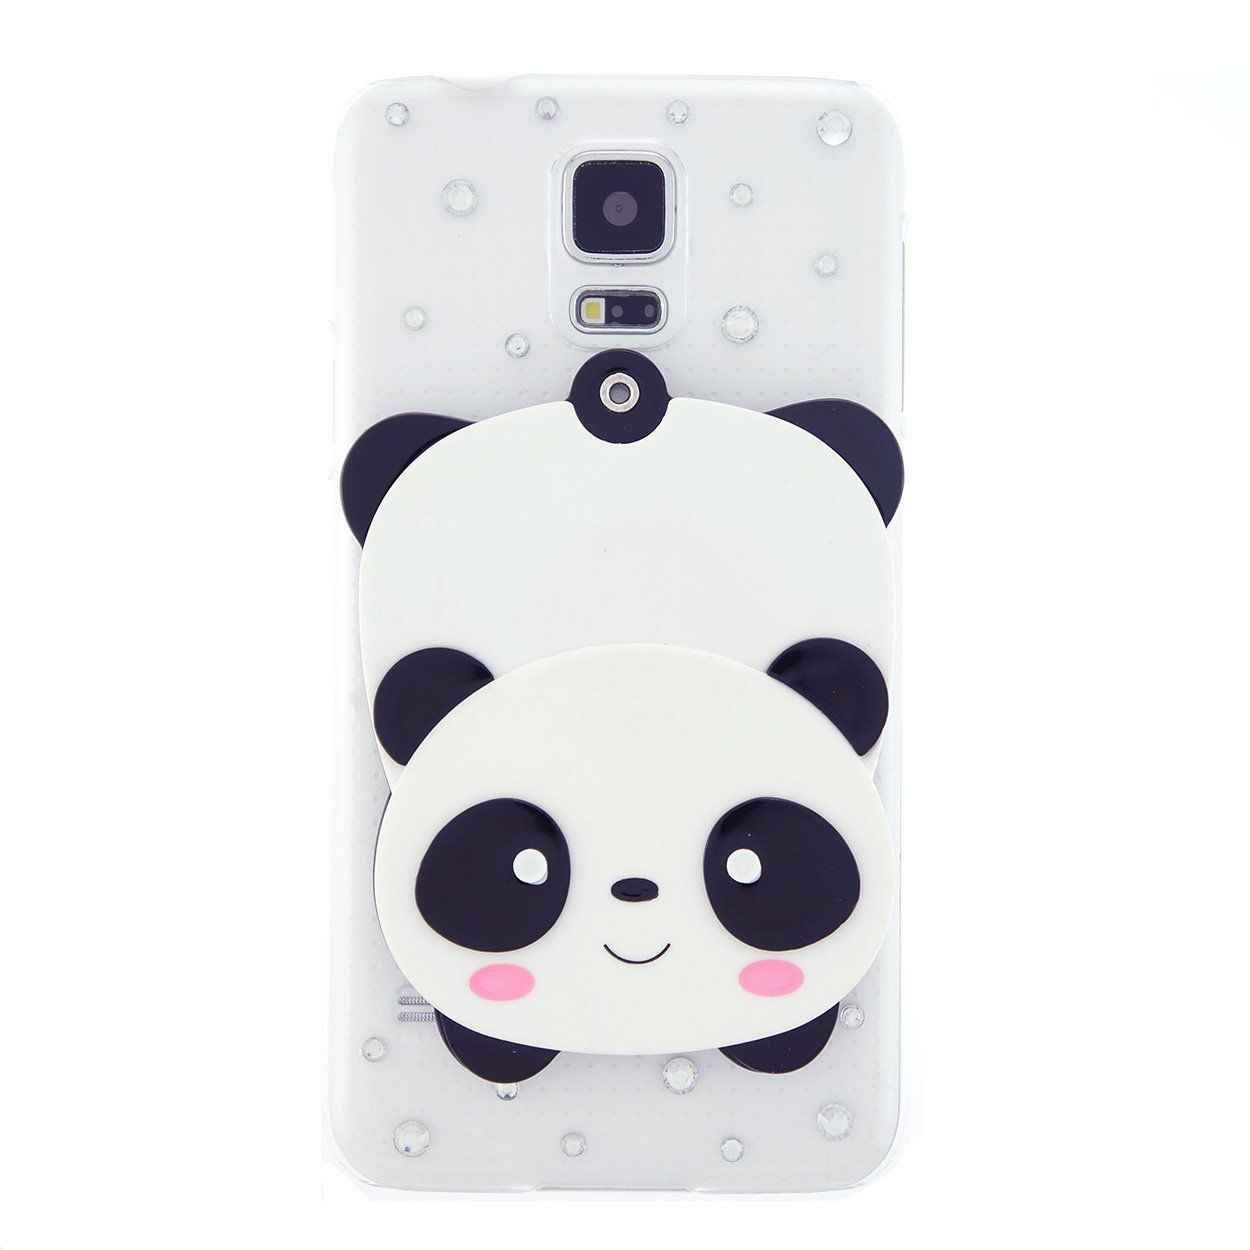 quality design d707d e6dee Amazon.com: CaseBee® - Cute Panda w/ Mirror Samsung Galaxy S5 i9600 ...